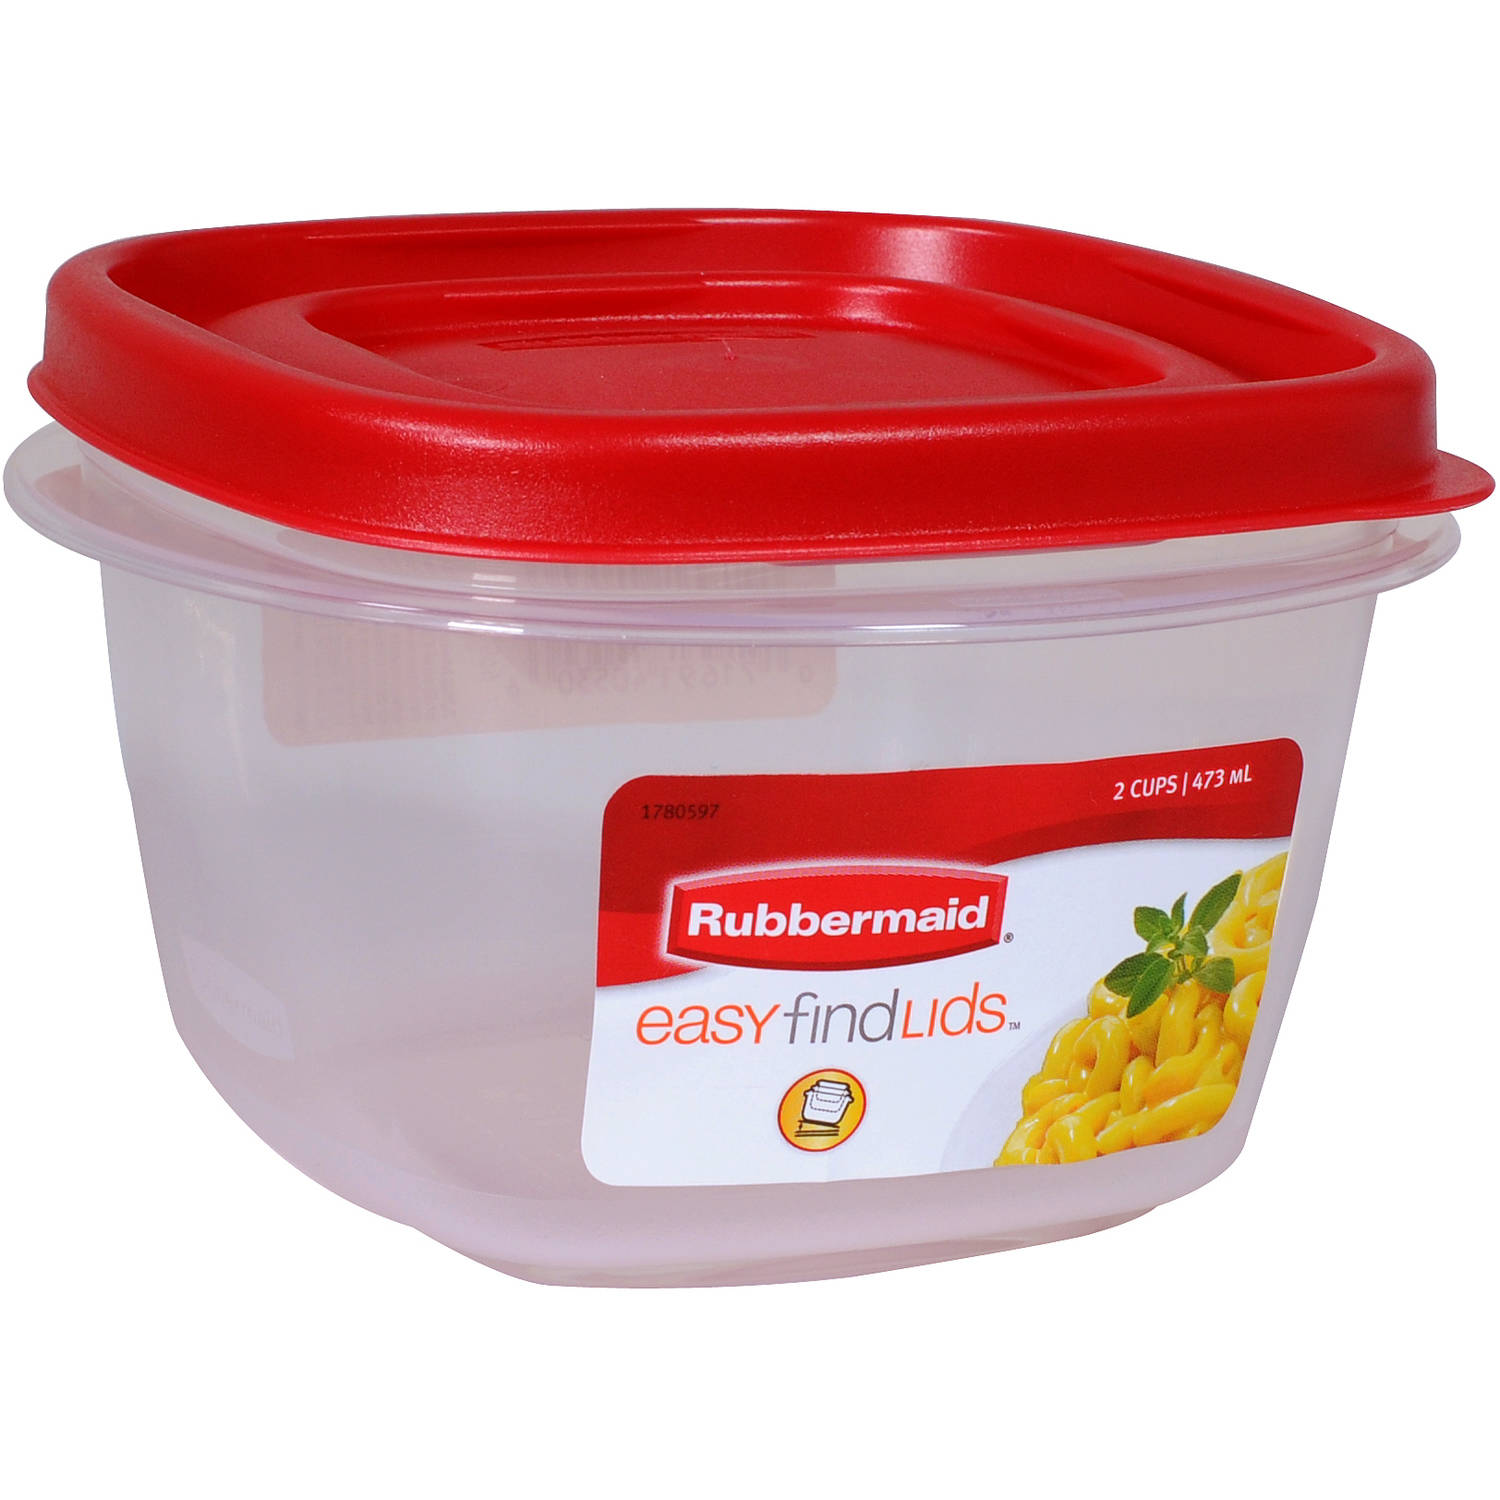 rubbermaid kitchen storage containers rubbermaid easy find lids food storage container 1 5 4947